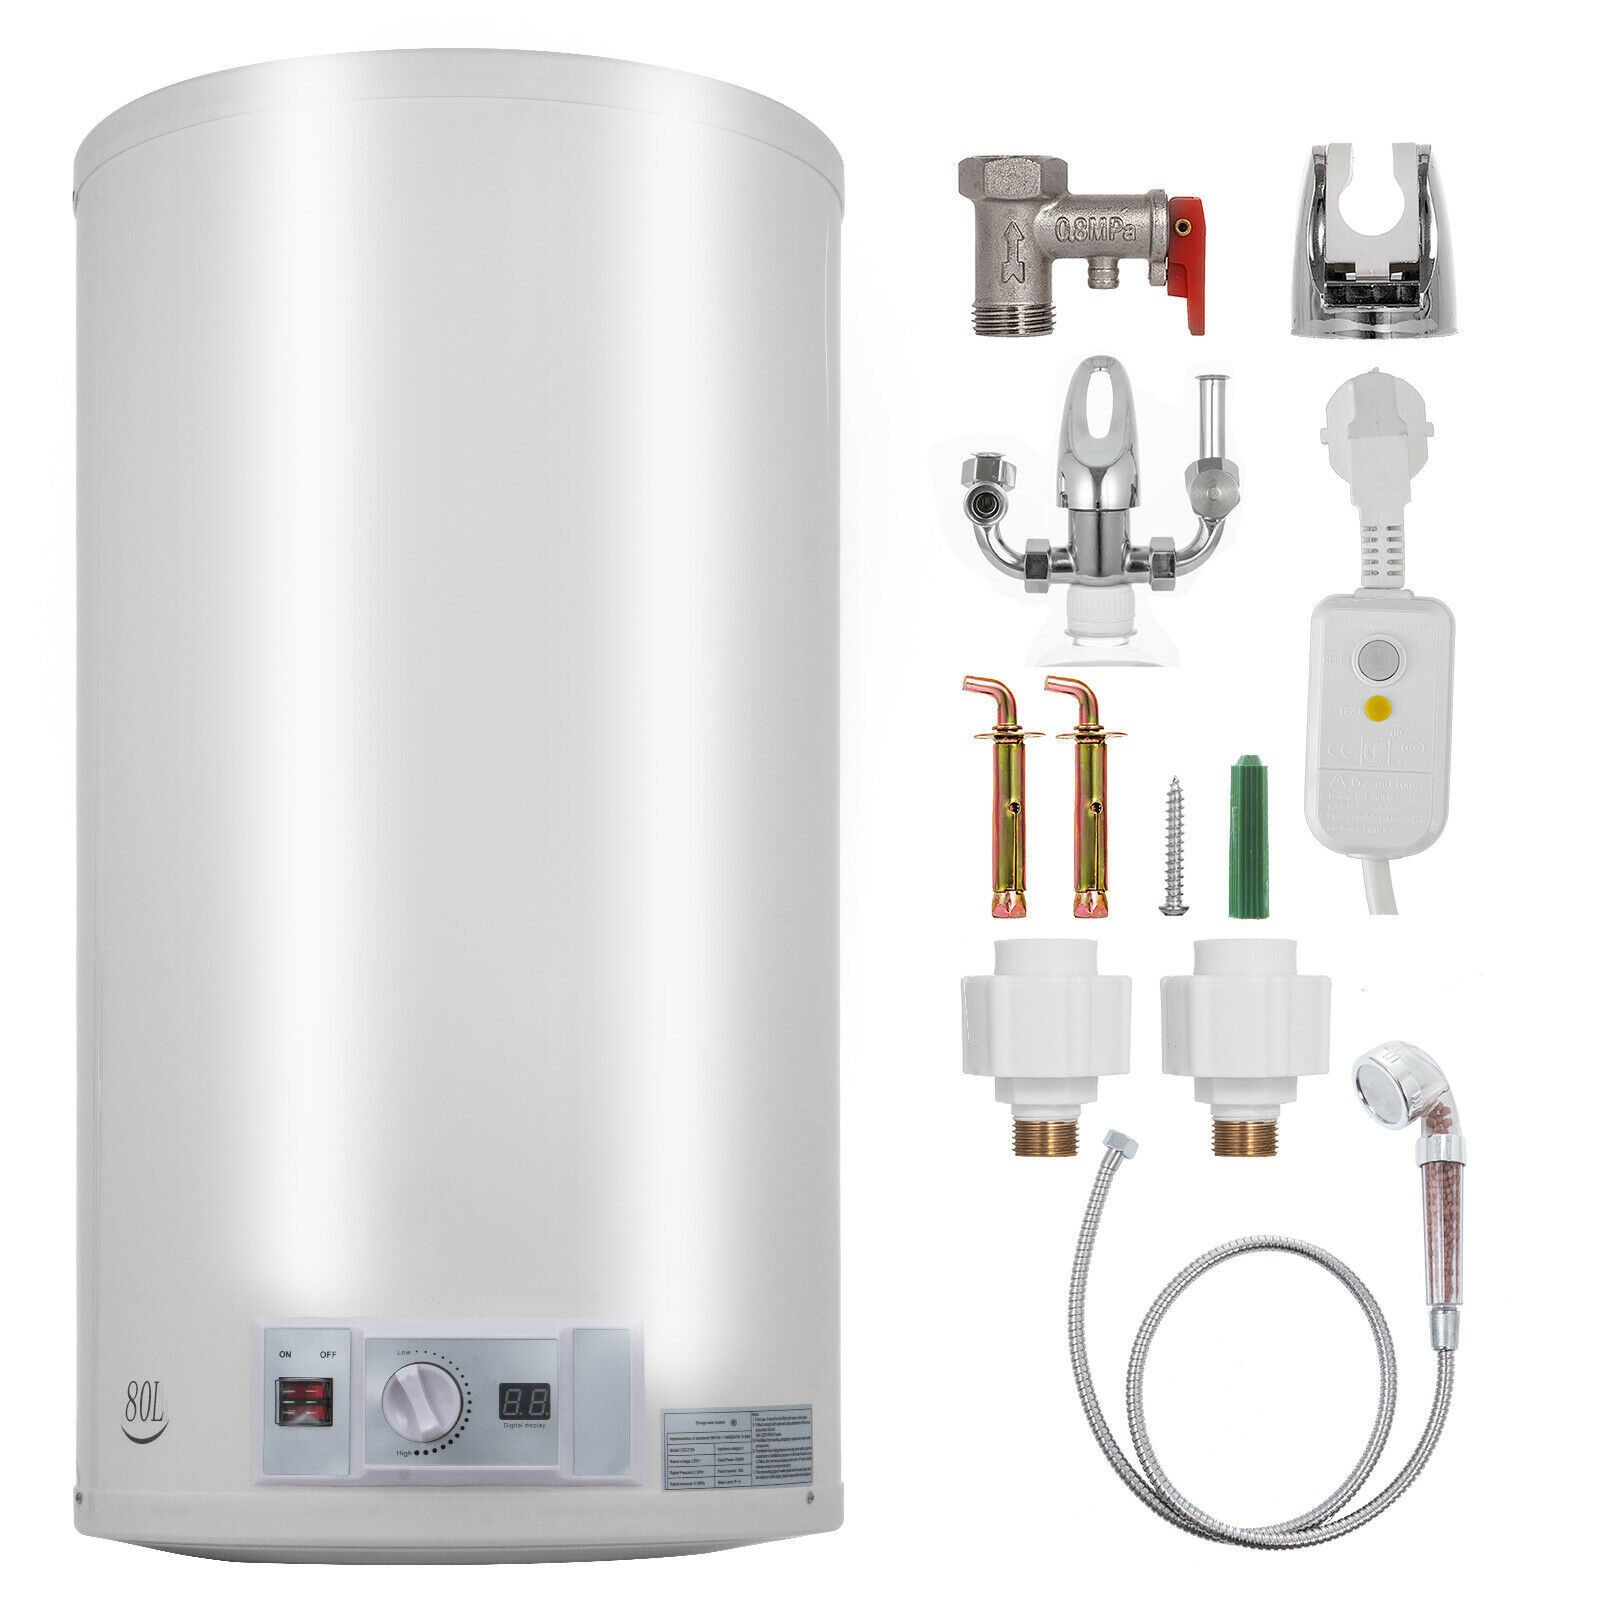 Electric Hot Water Heater >> Us 97 41 8 Off Vevor 80l Electric Hot Water Heater Boiler Storage Tank W Shower Head Vertically In Electric Water Heater Parts From Home Appliances